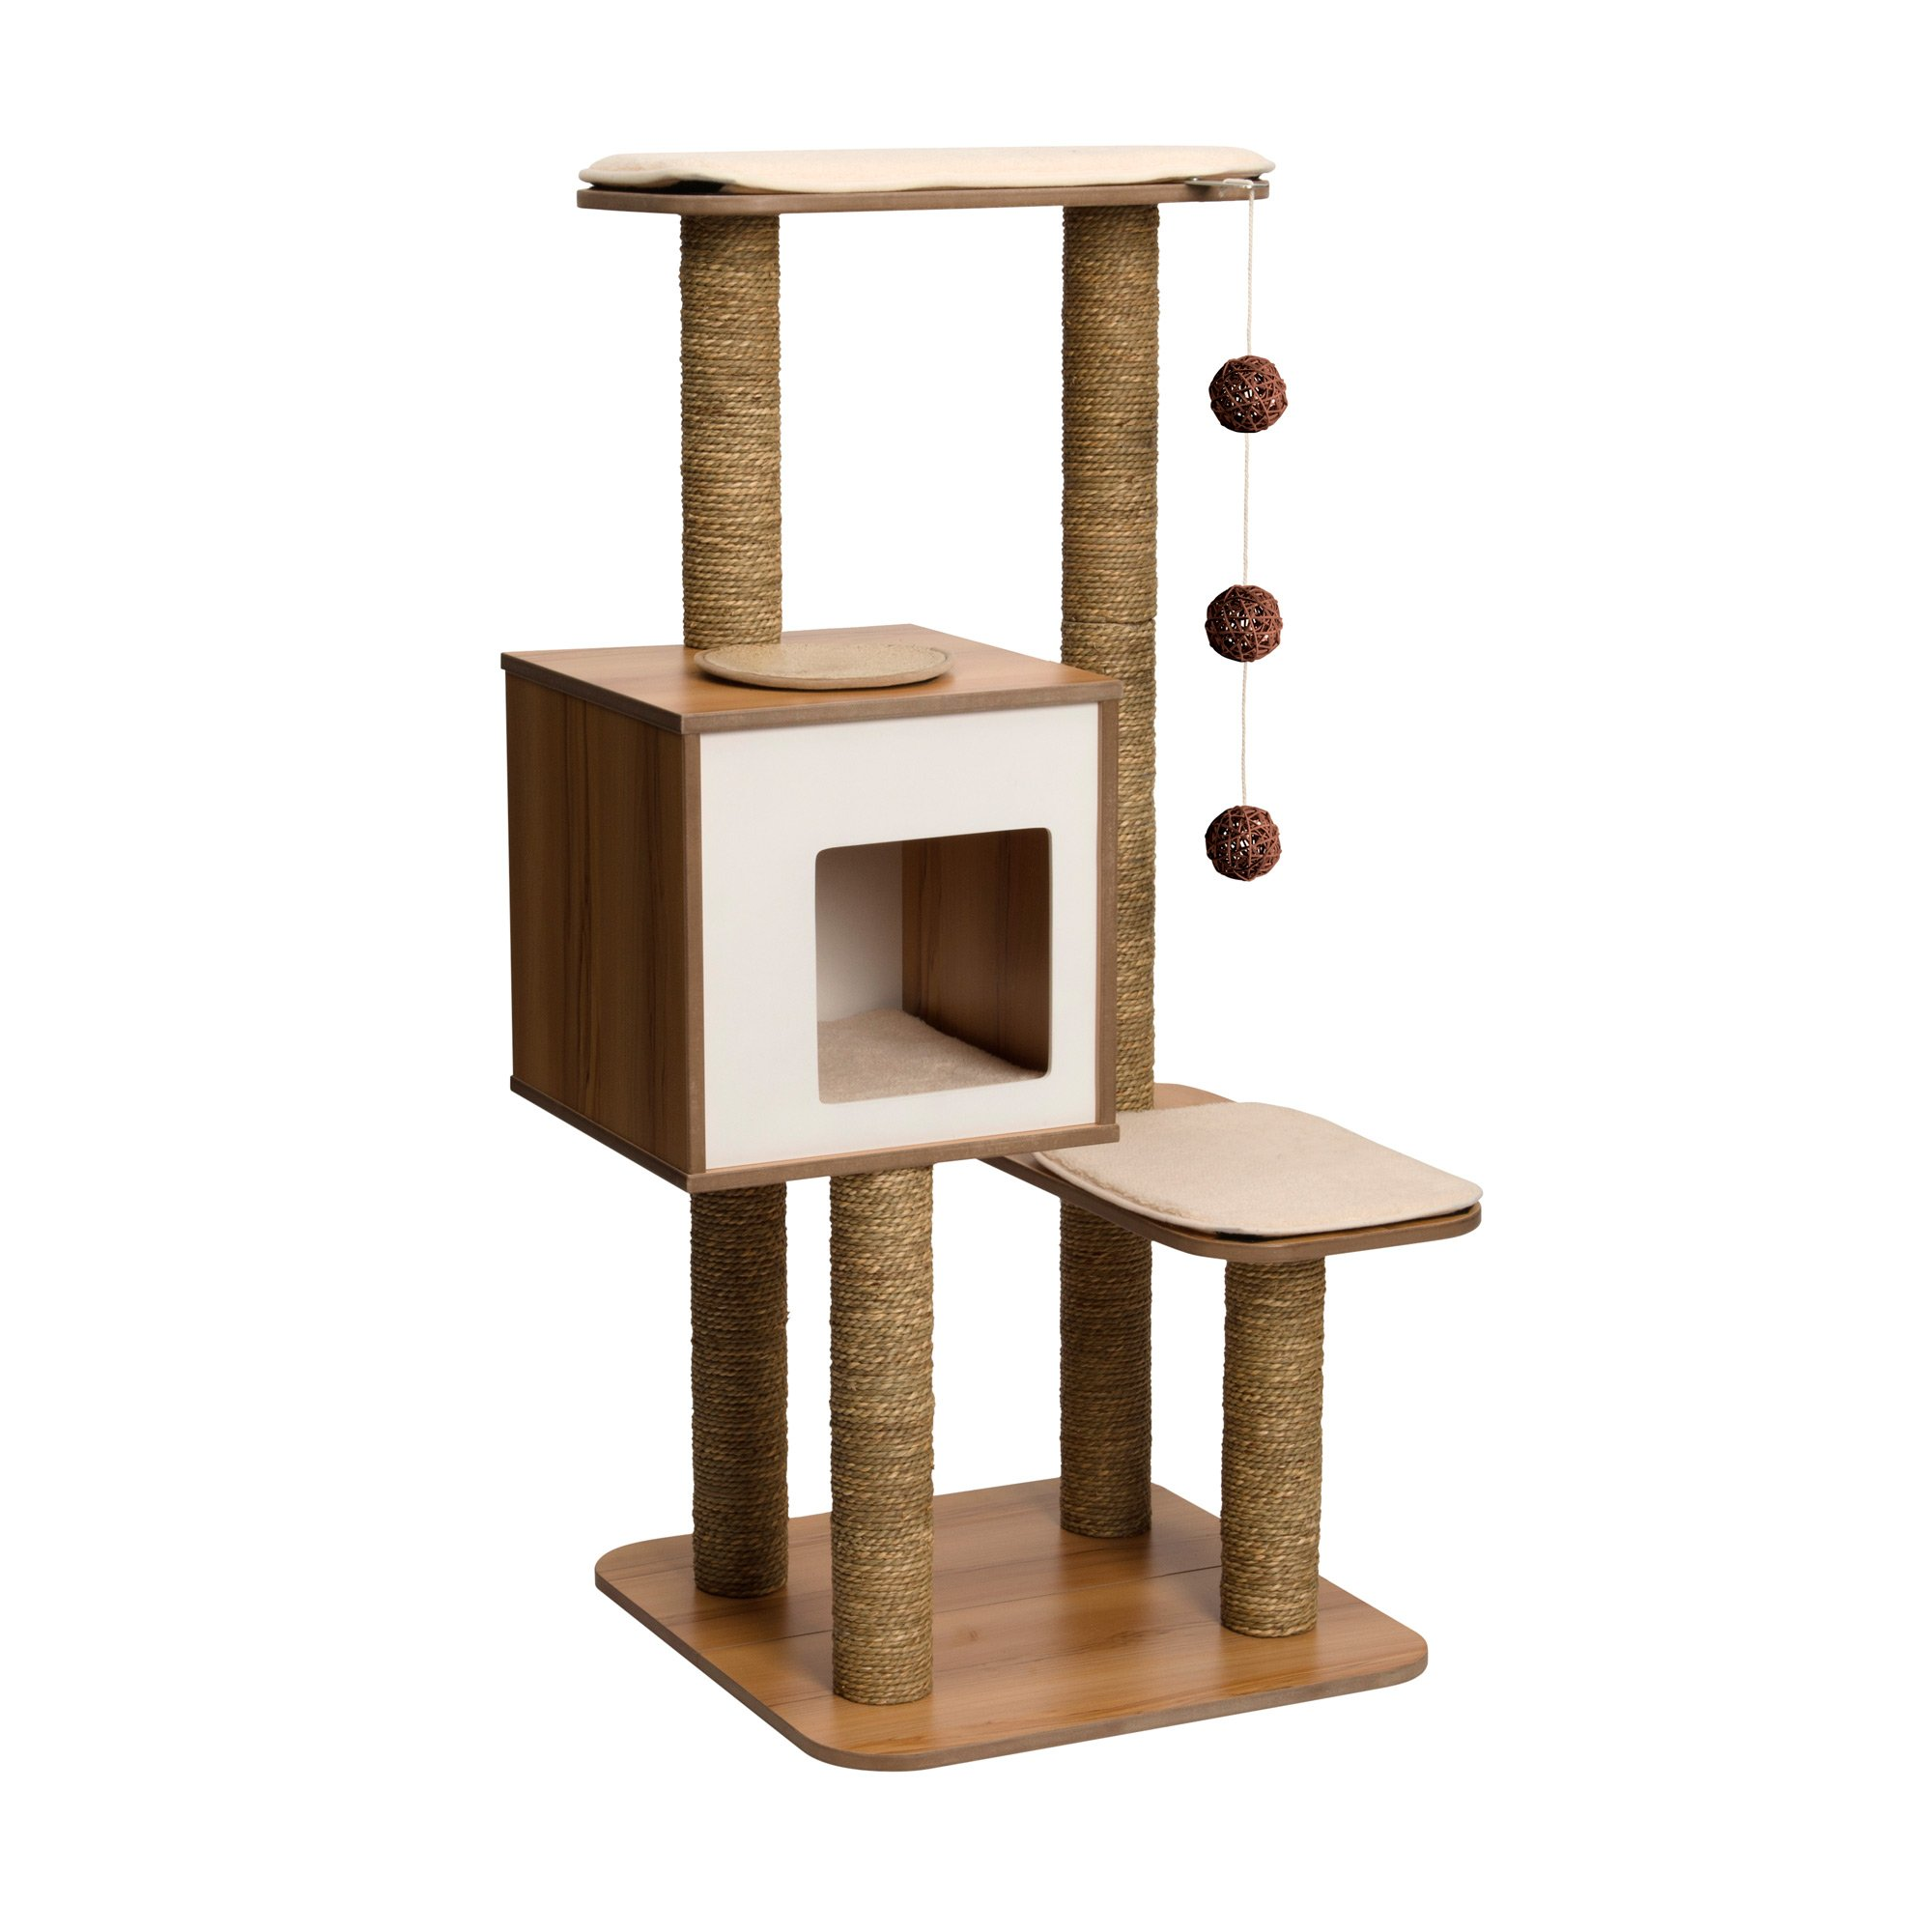 Vesper cat furniture v high base petco - Sofas para gatos ...